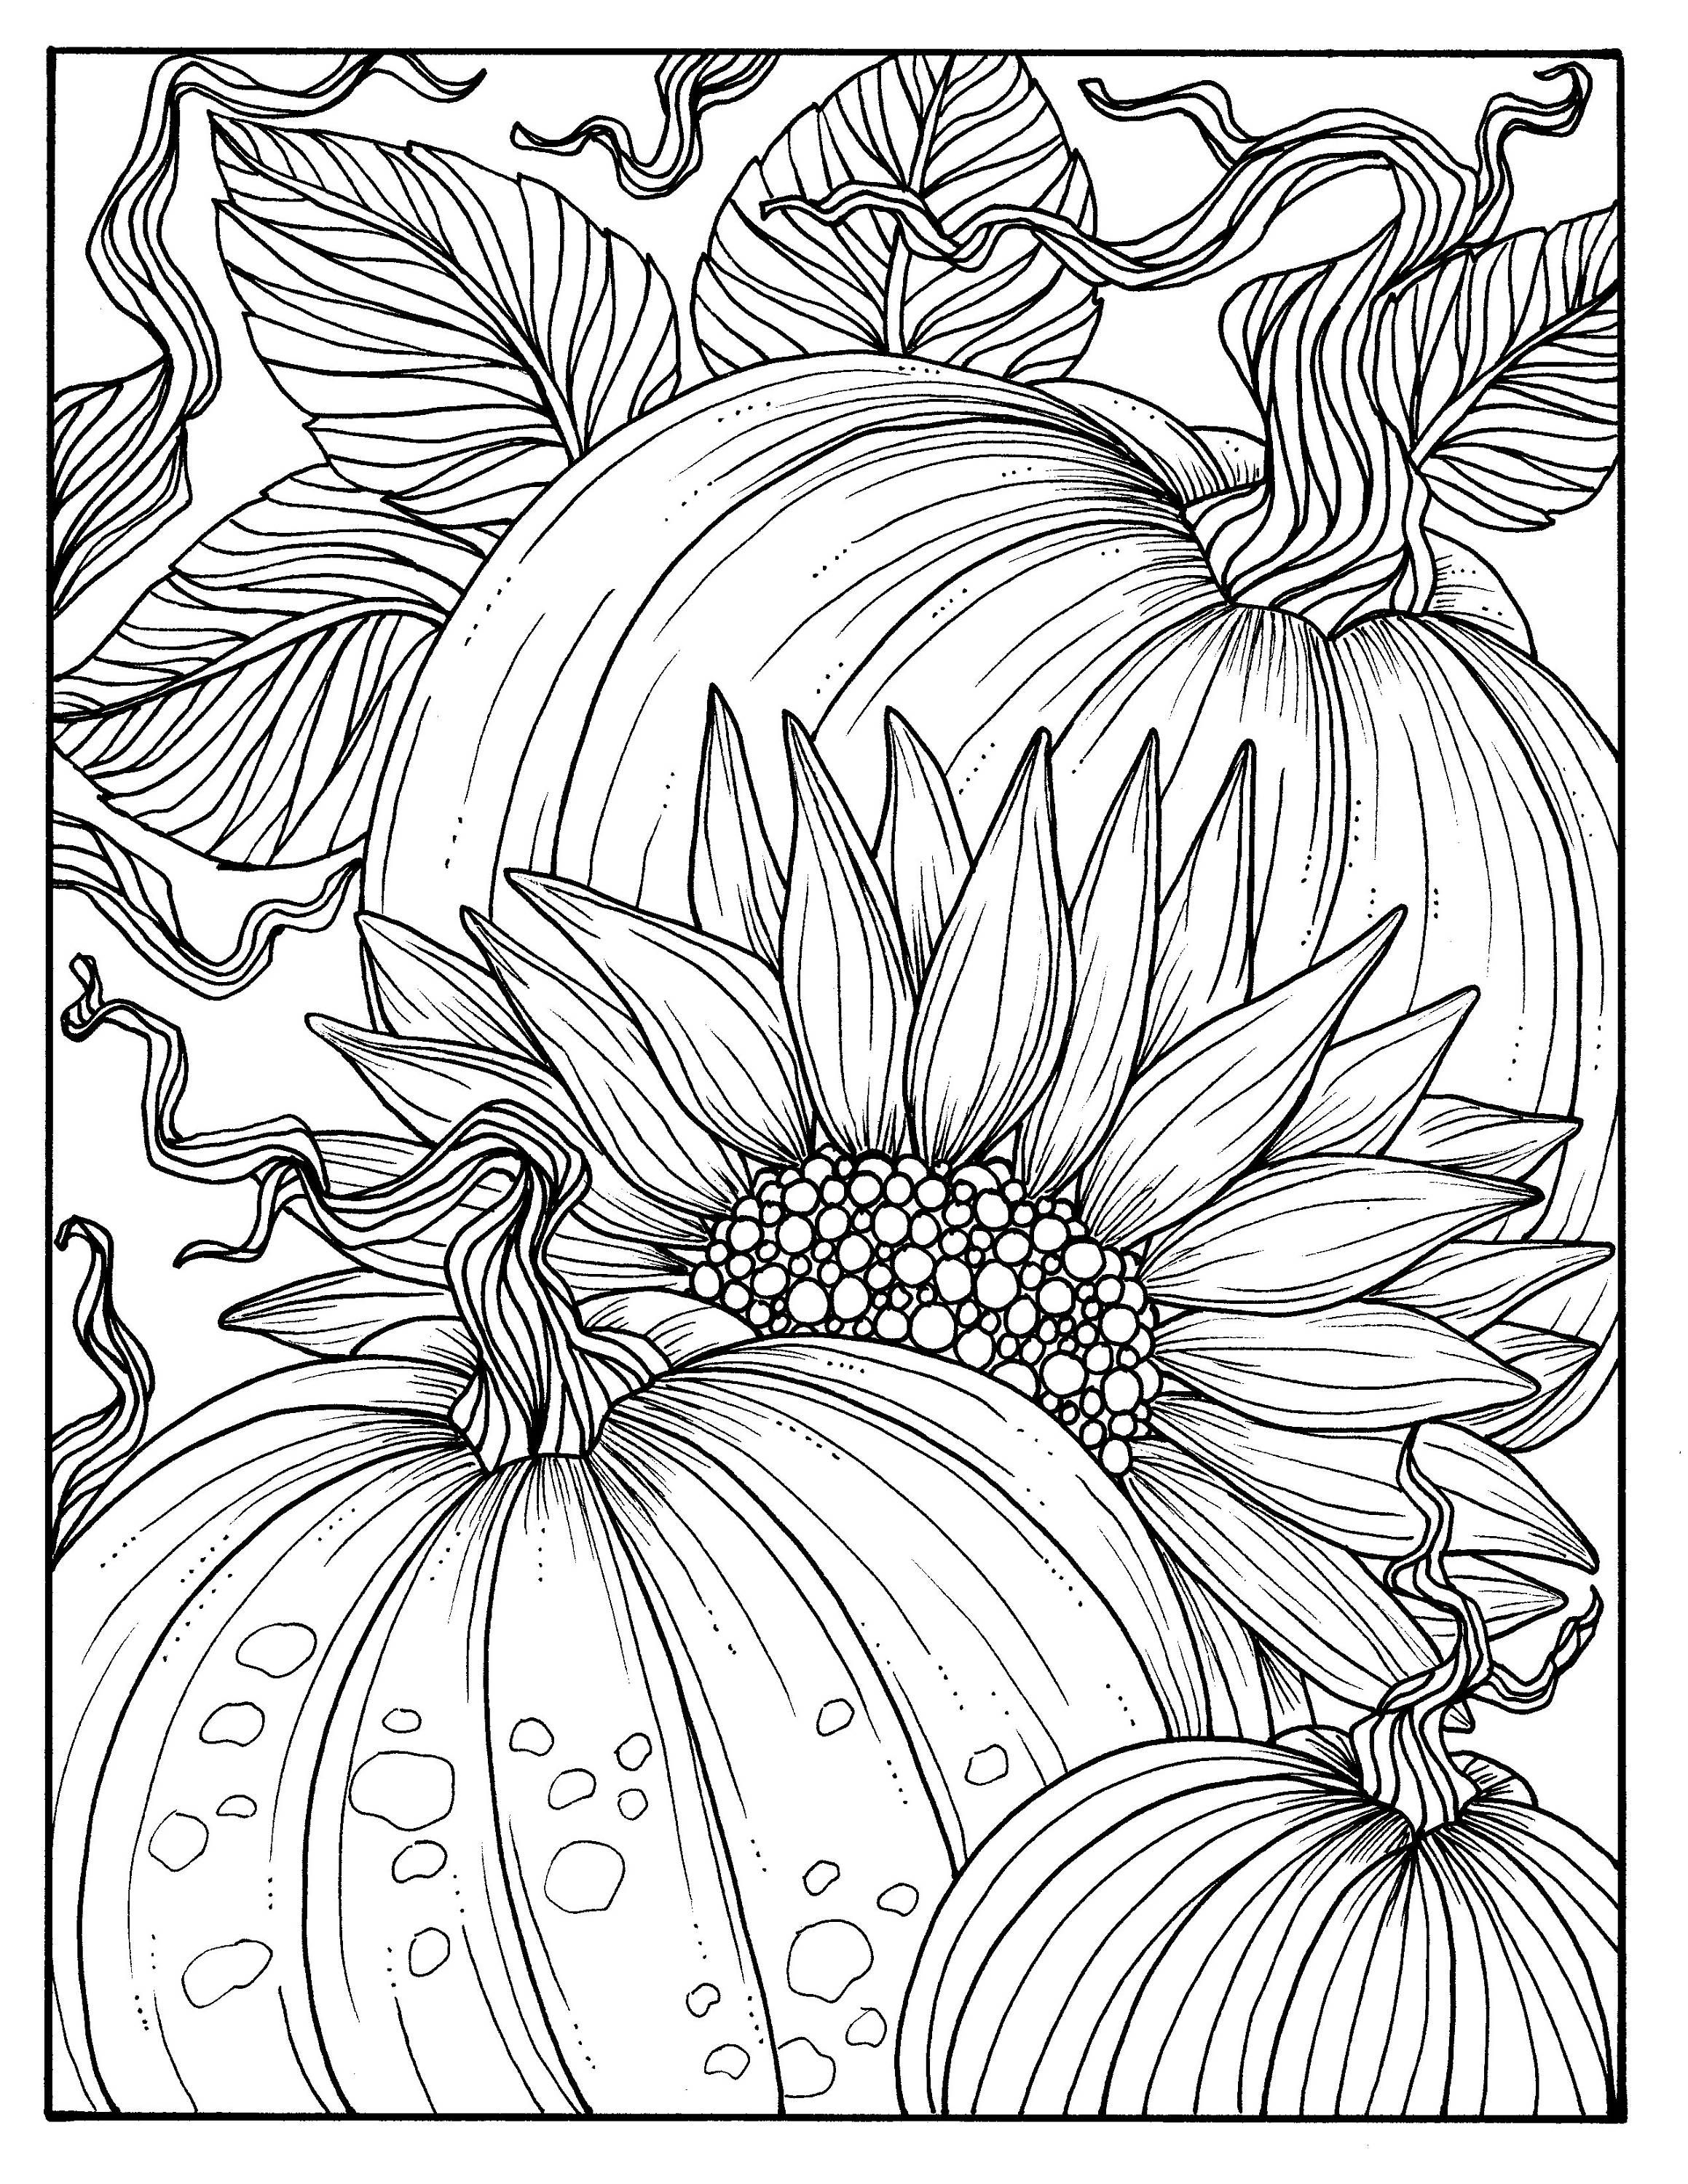 Pumpkins And Sunflower Digital Coloring Page Fall, Adult